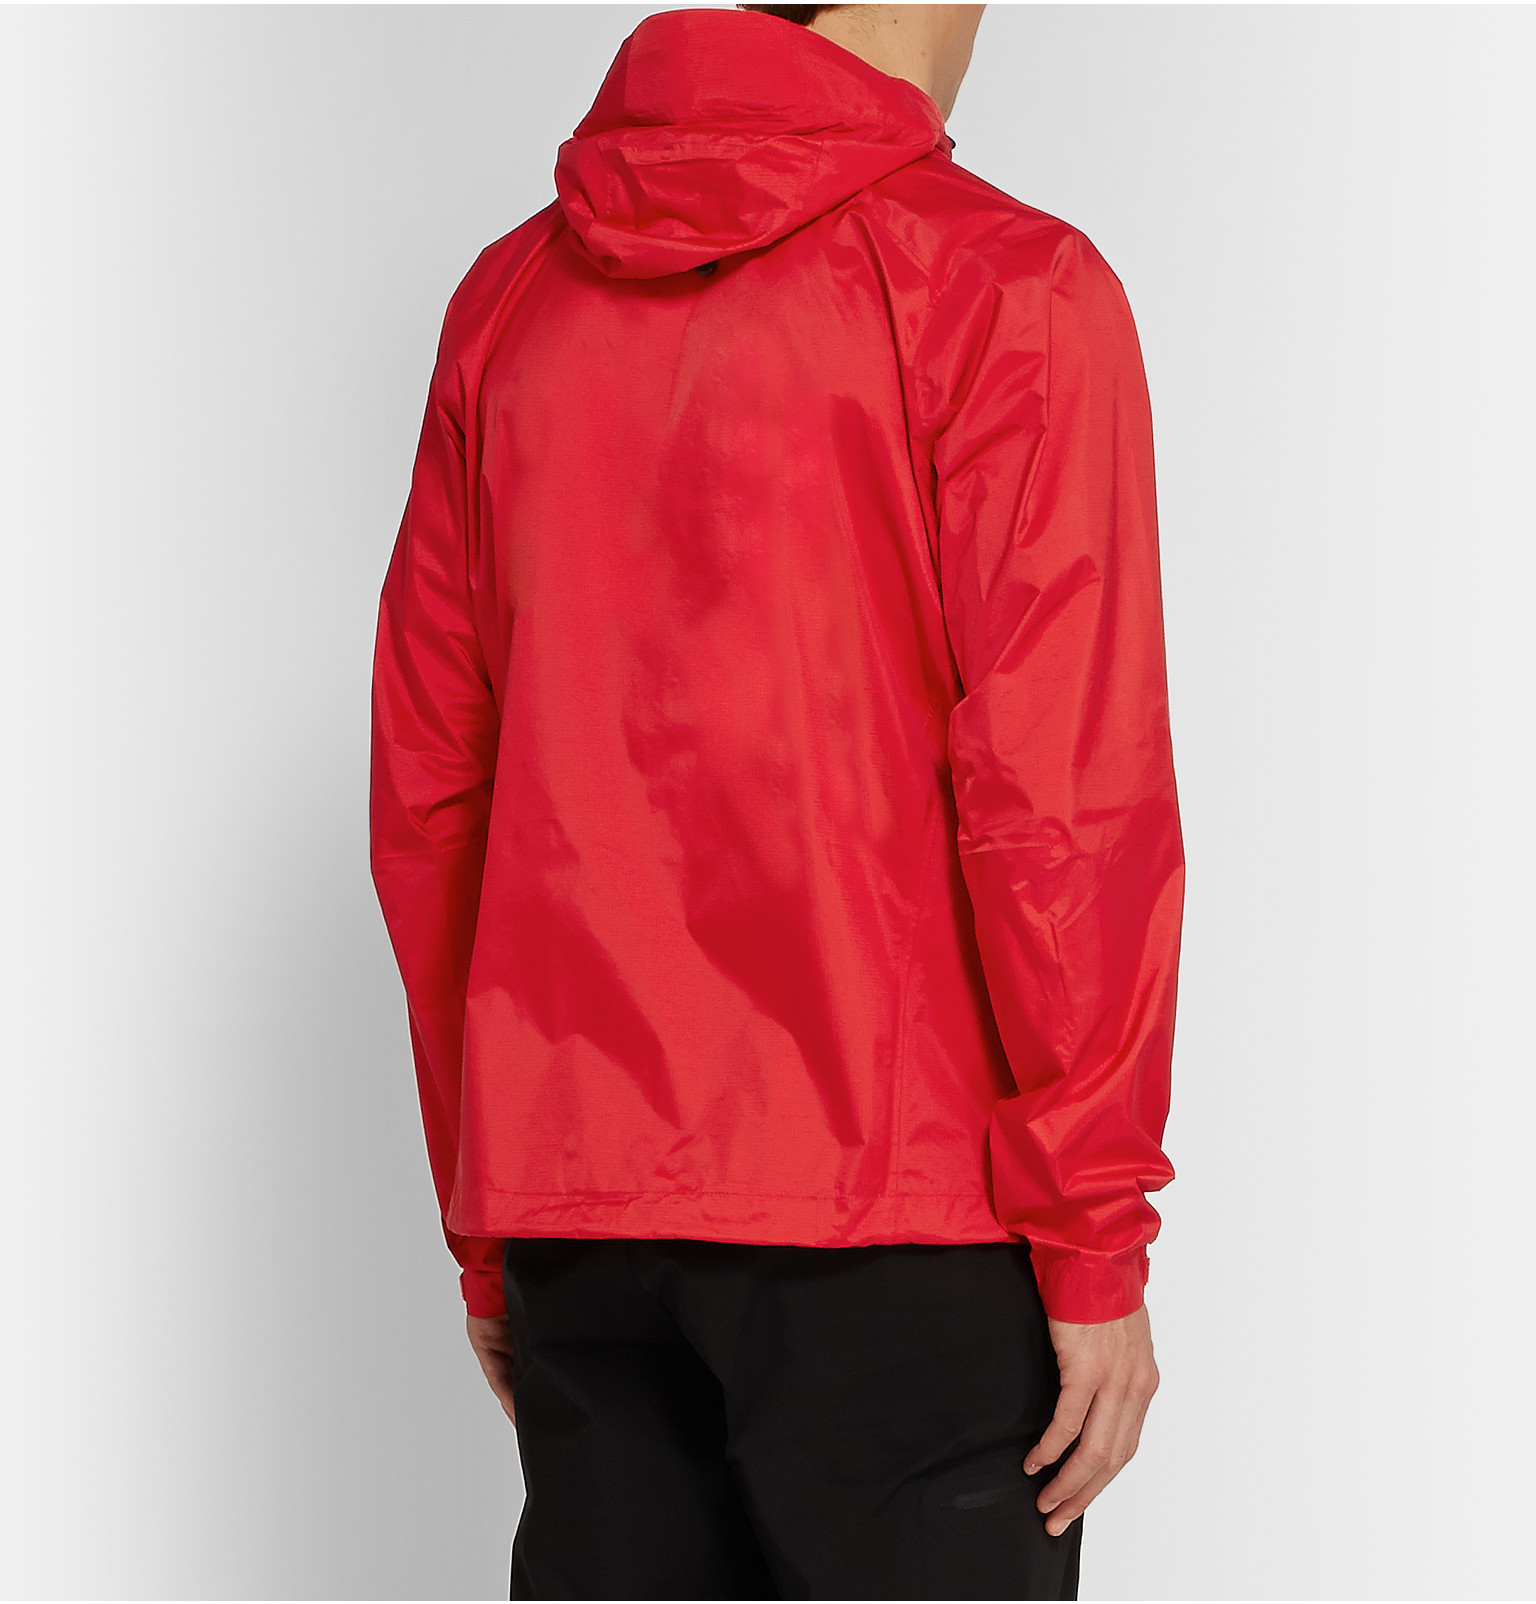 Patagonia Torrentshell Waterproof Shell Jacket in Red for Men